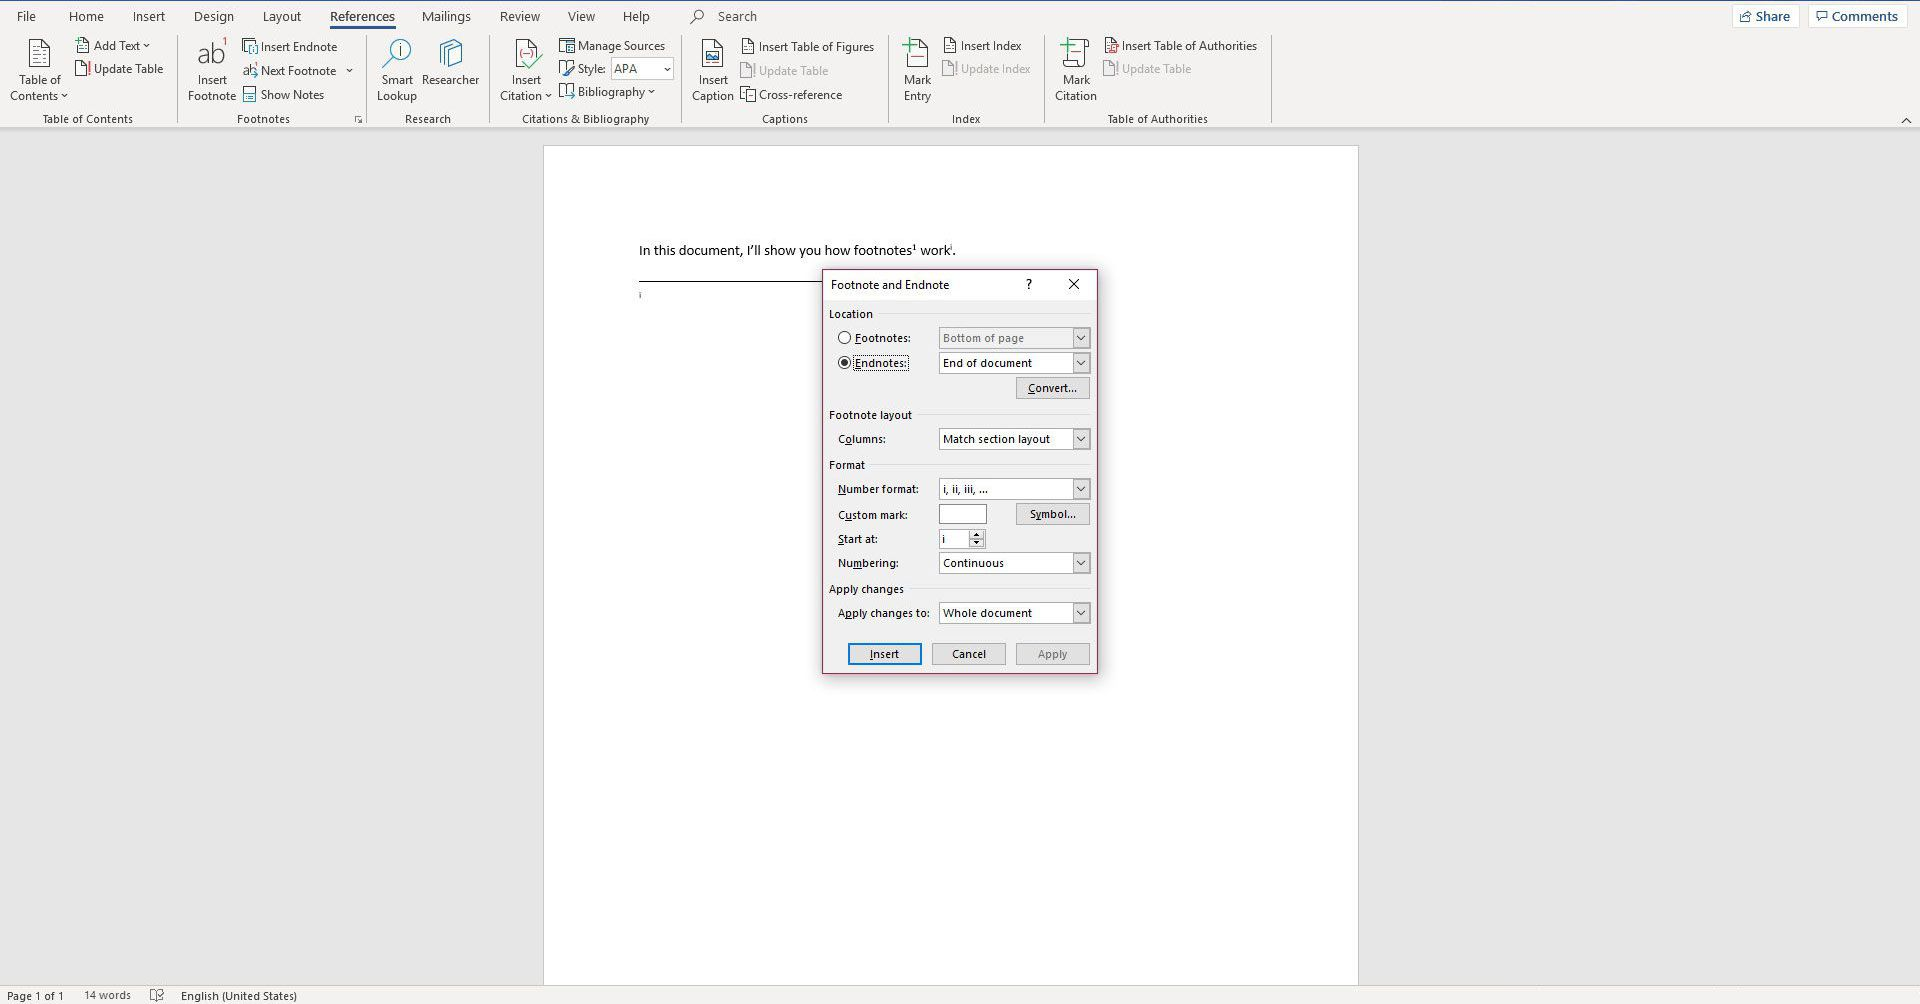 More Options window in Word